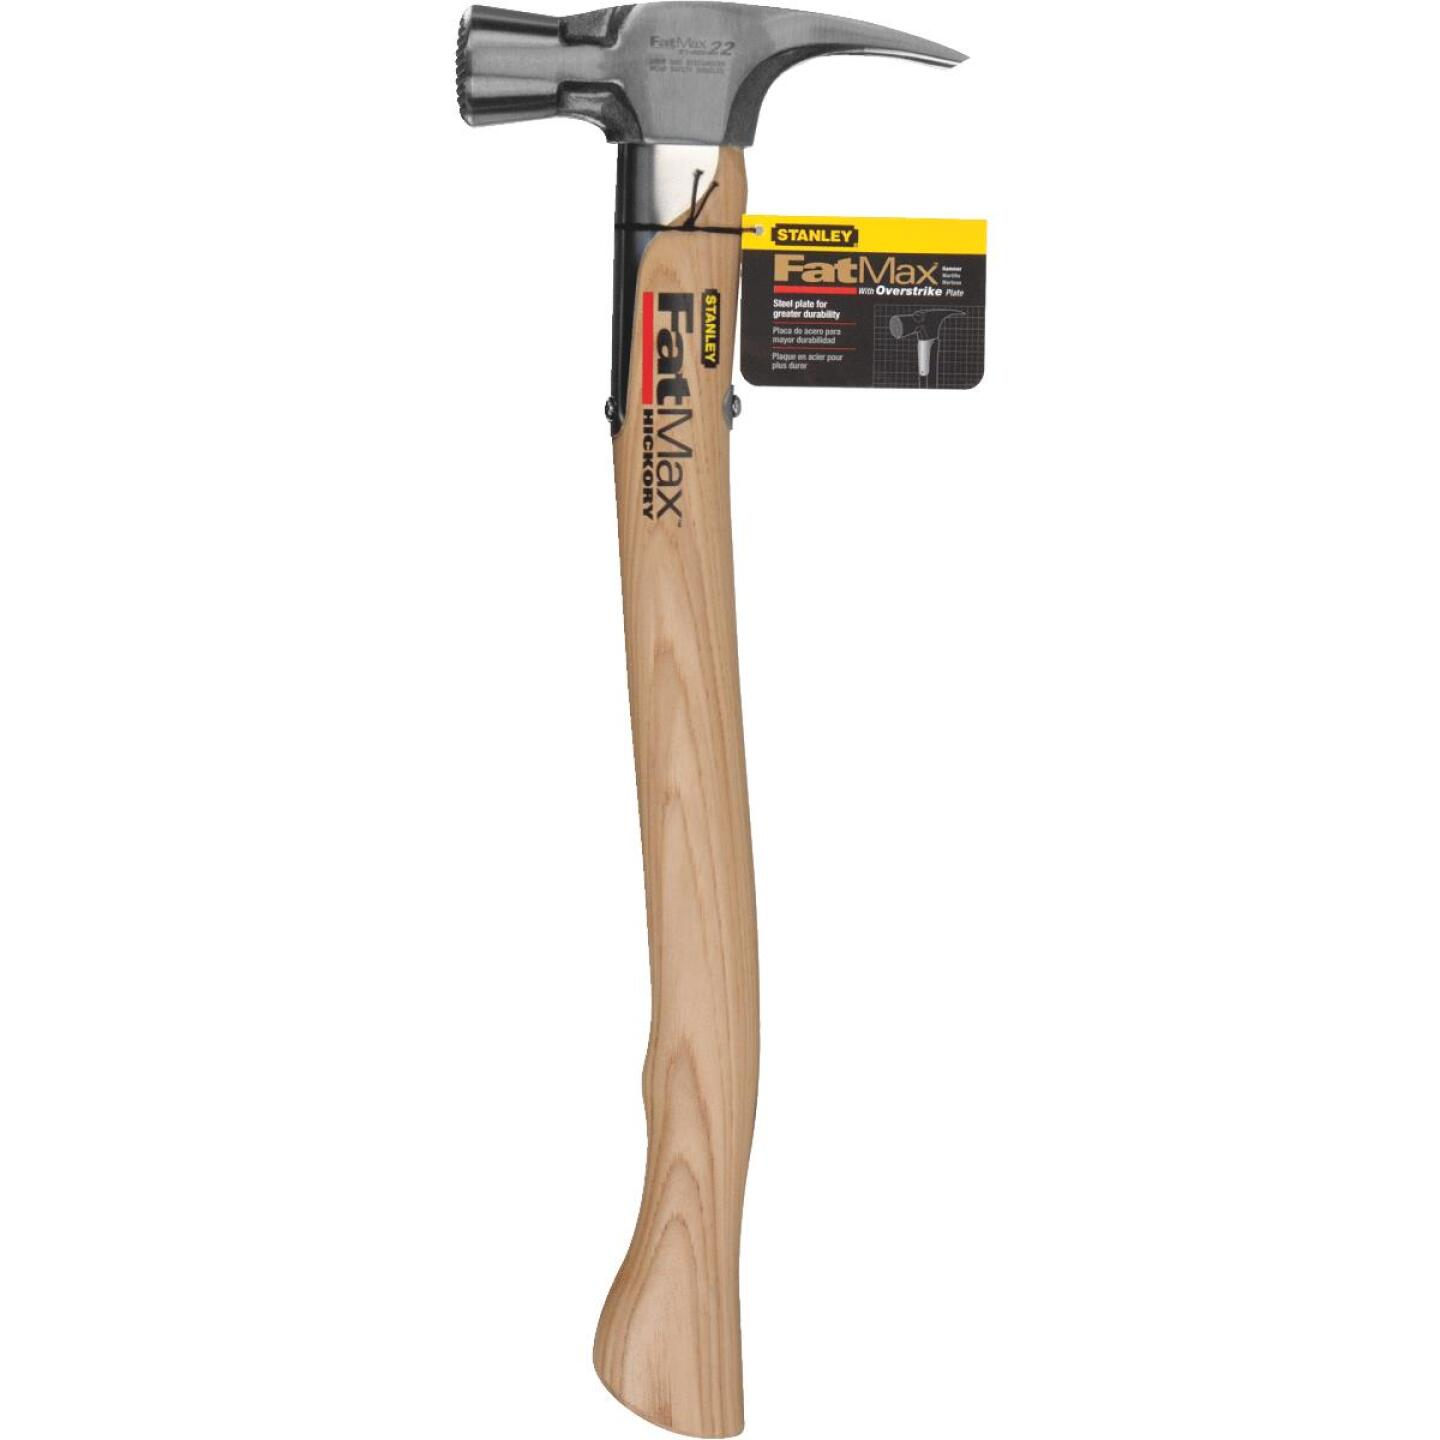 Stanley FatMax 22 Oz. Milled-Face Overstrike Framing Hammer with Hickory Axe Handle Image 2